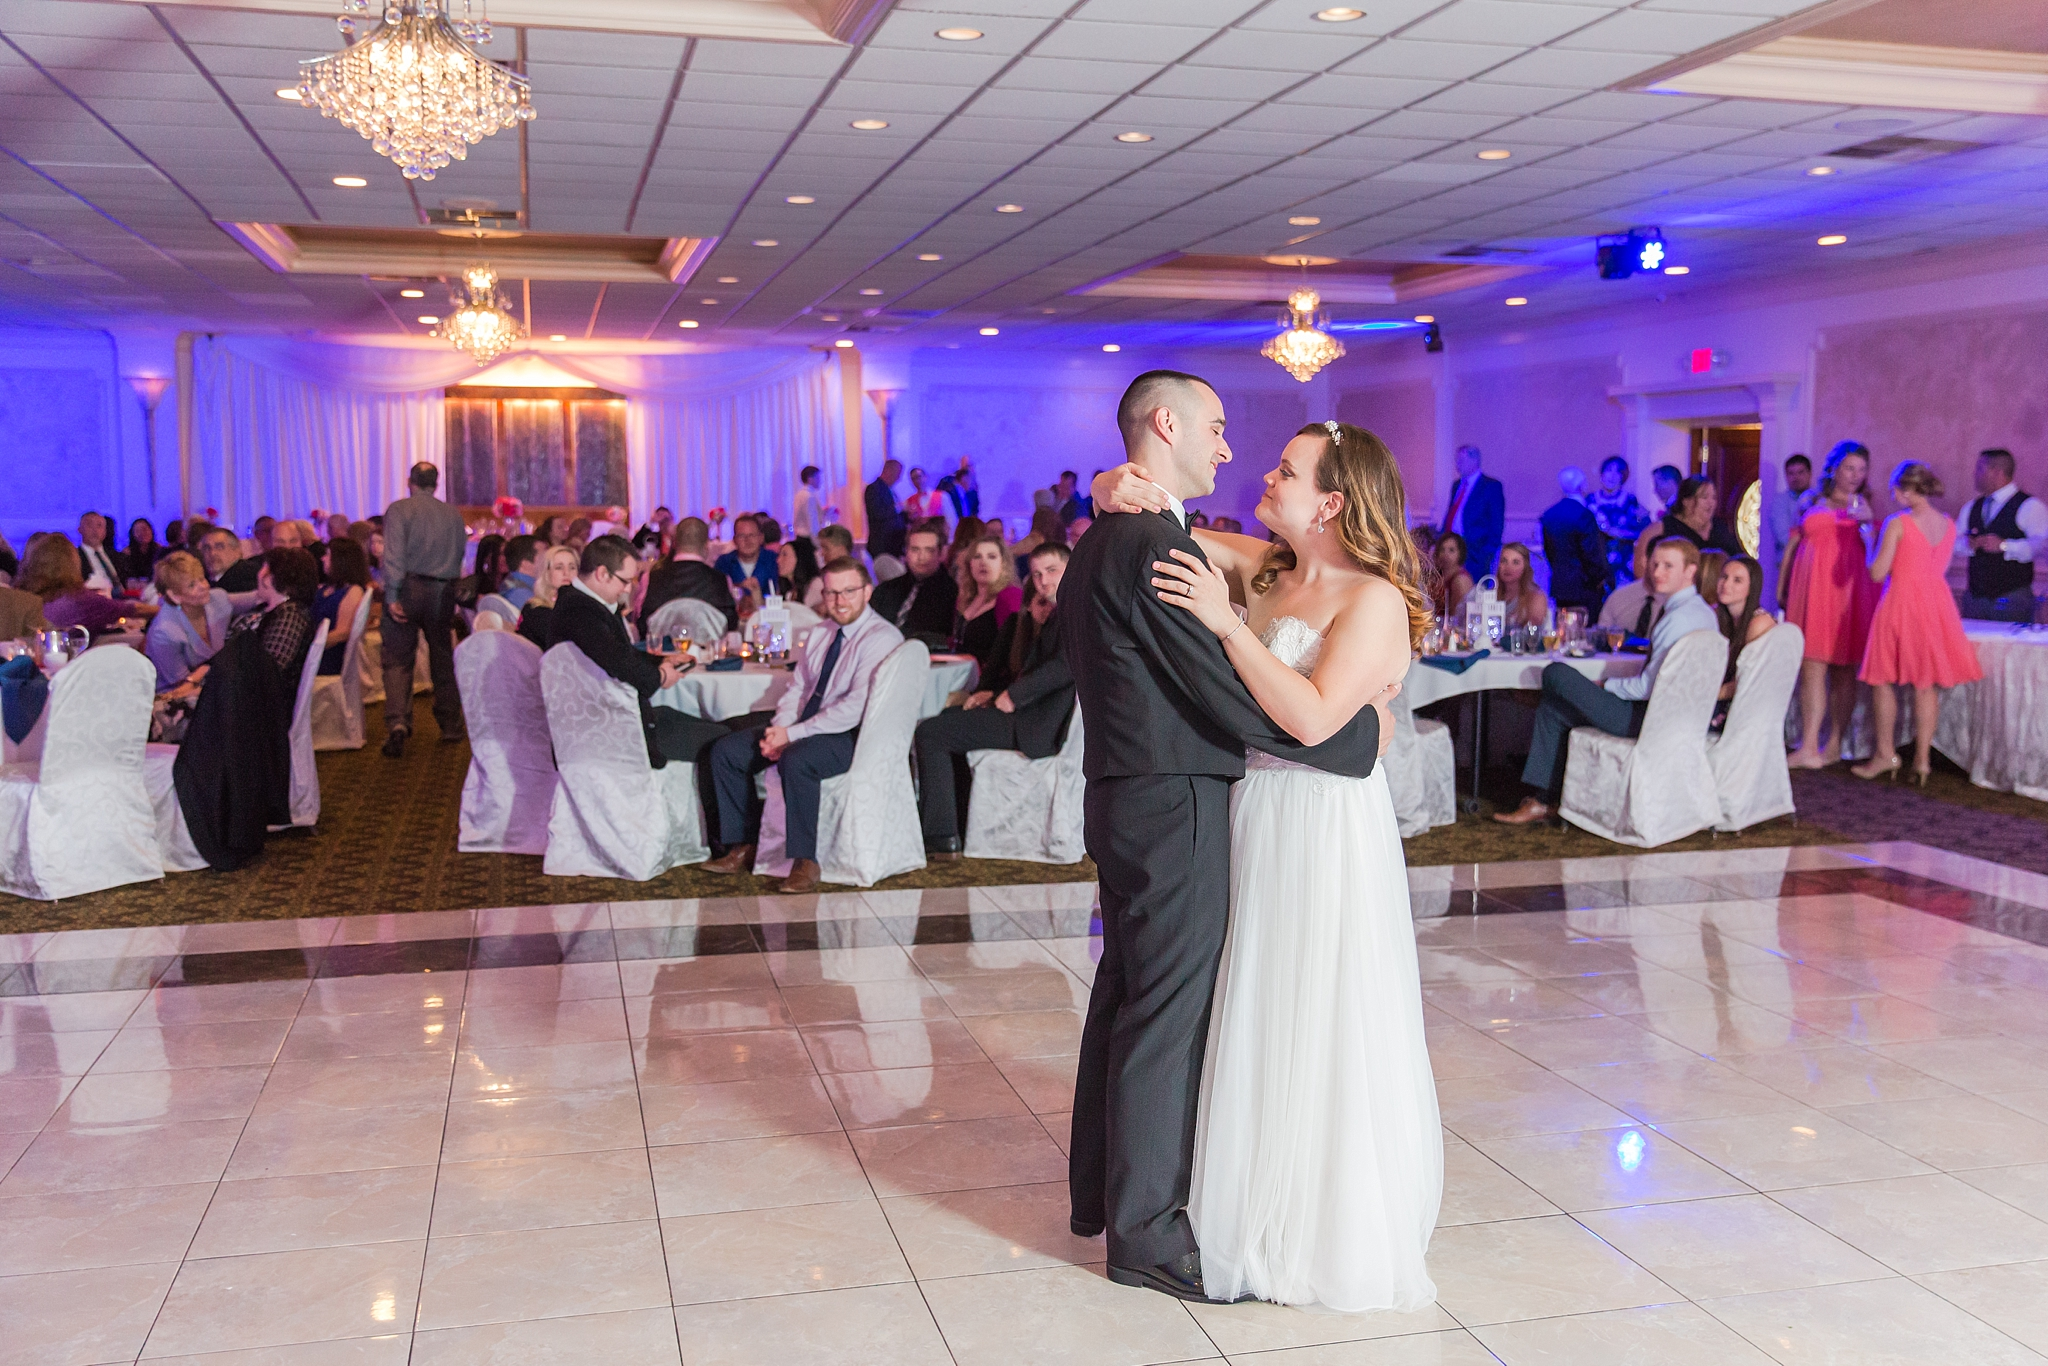 romantic-artful-candid-wedding-photos-in-st-clair-shores-at-the-white-house-wedding-chapel-by-courtney-carolyn-photography_0079.jpg